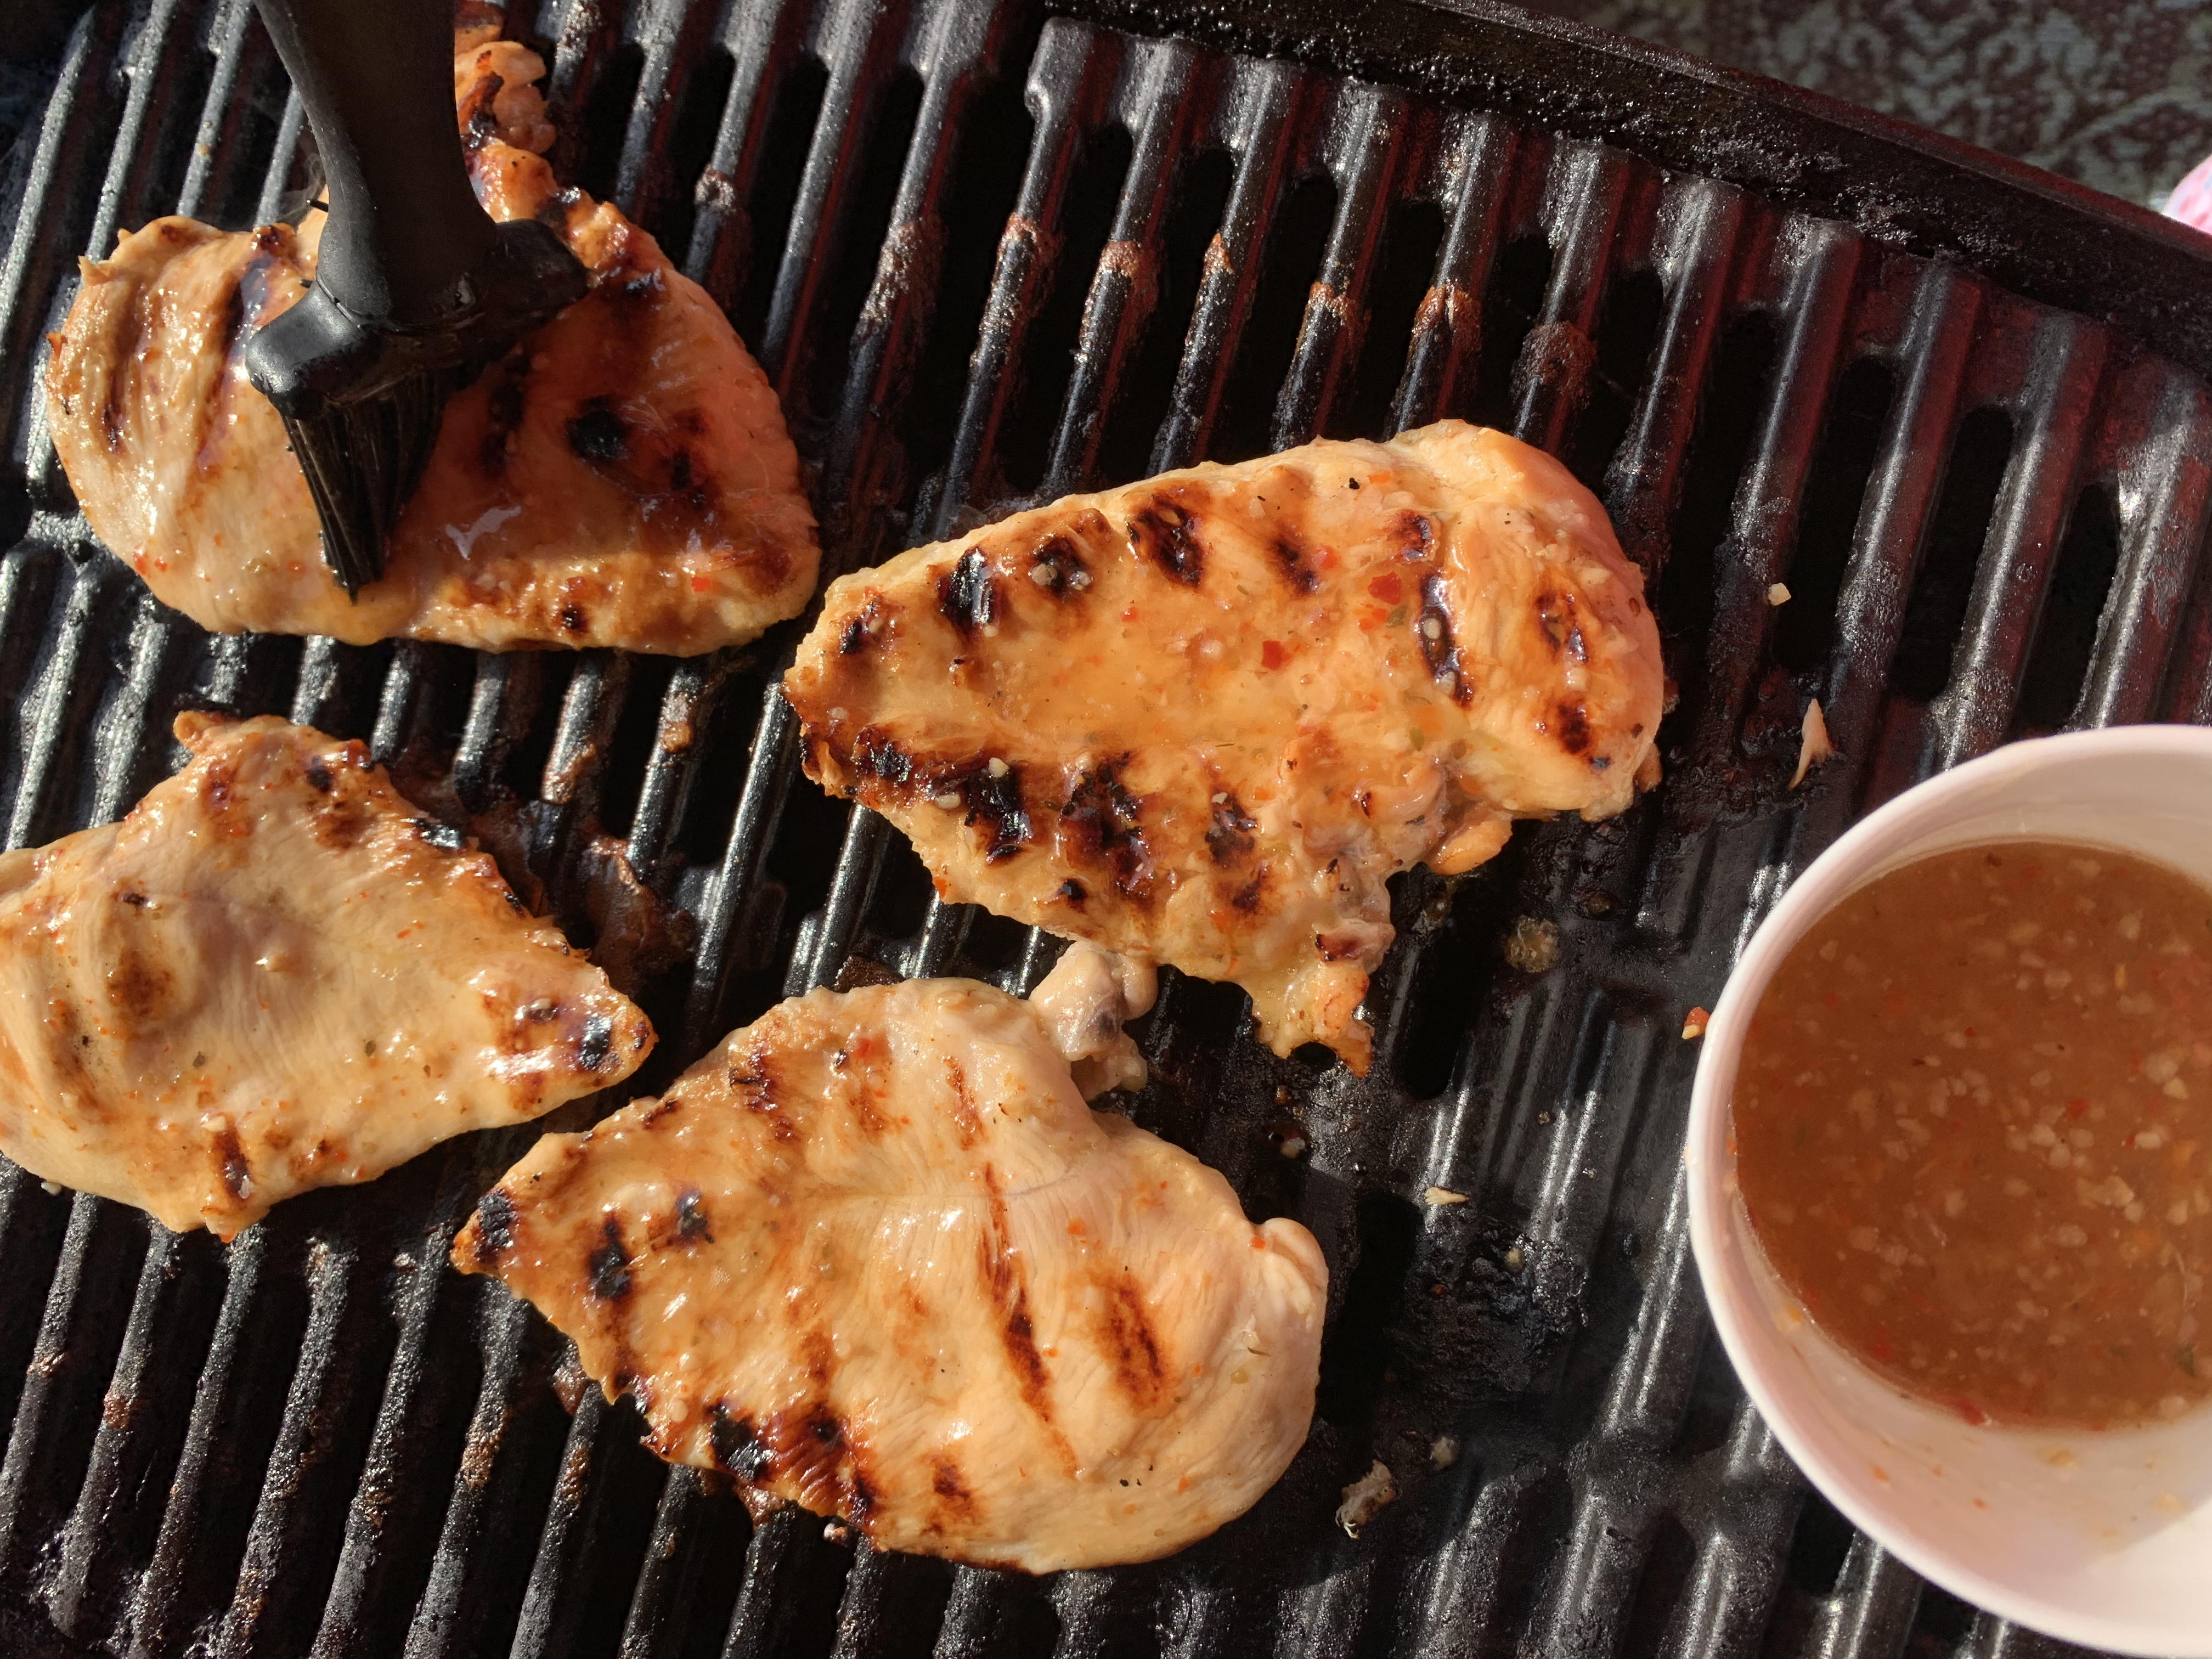 4 Chicken breasts on a weber grill being basted with Italian dressing.